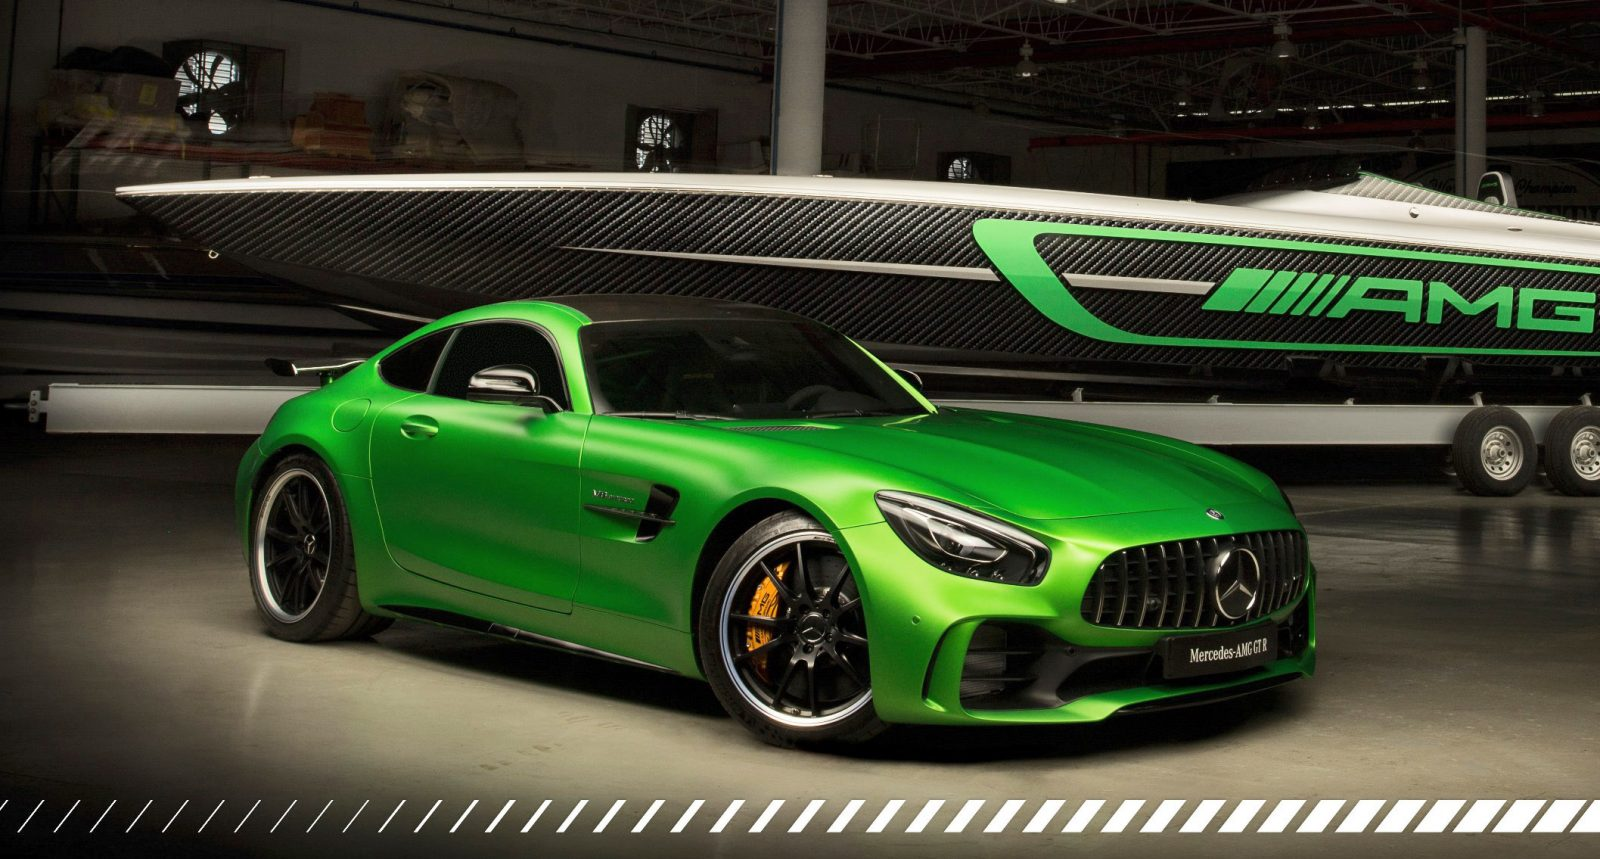 2018 mercedes amg gtr x marauder amg twins for miami boat show. Black Bedroom Furniture Sets. Home Design Ideas